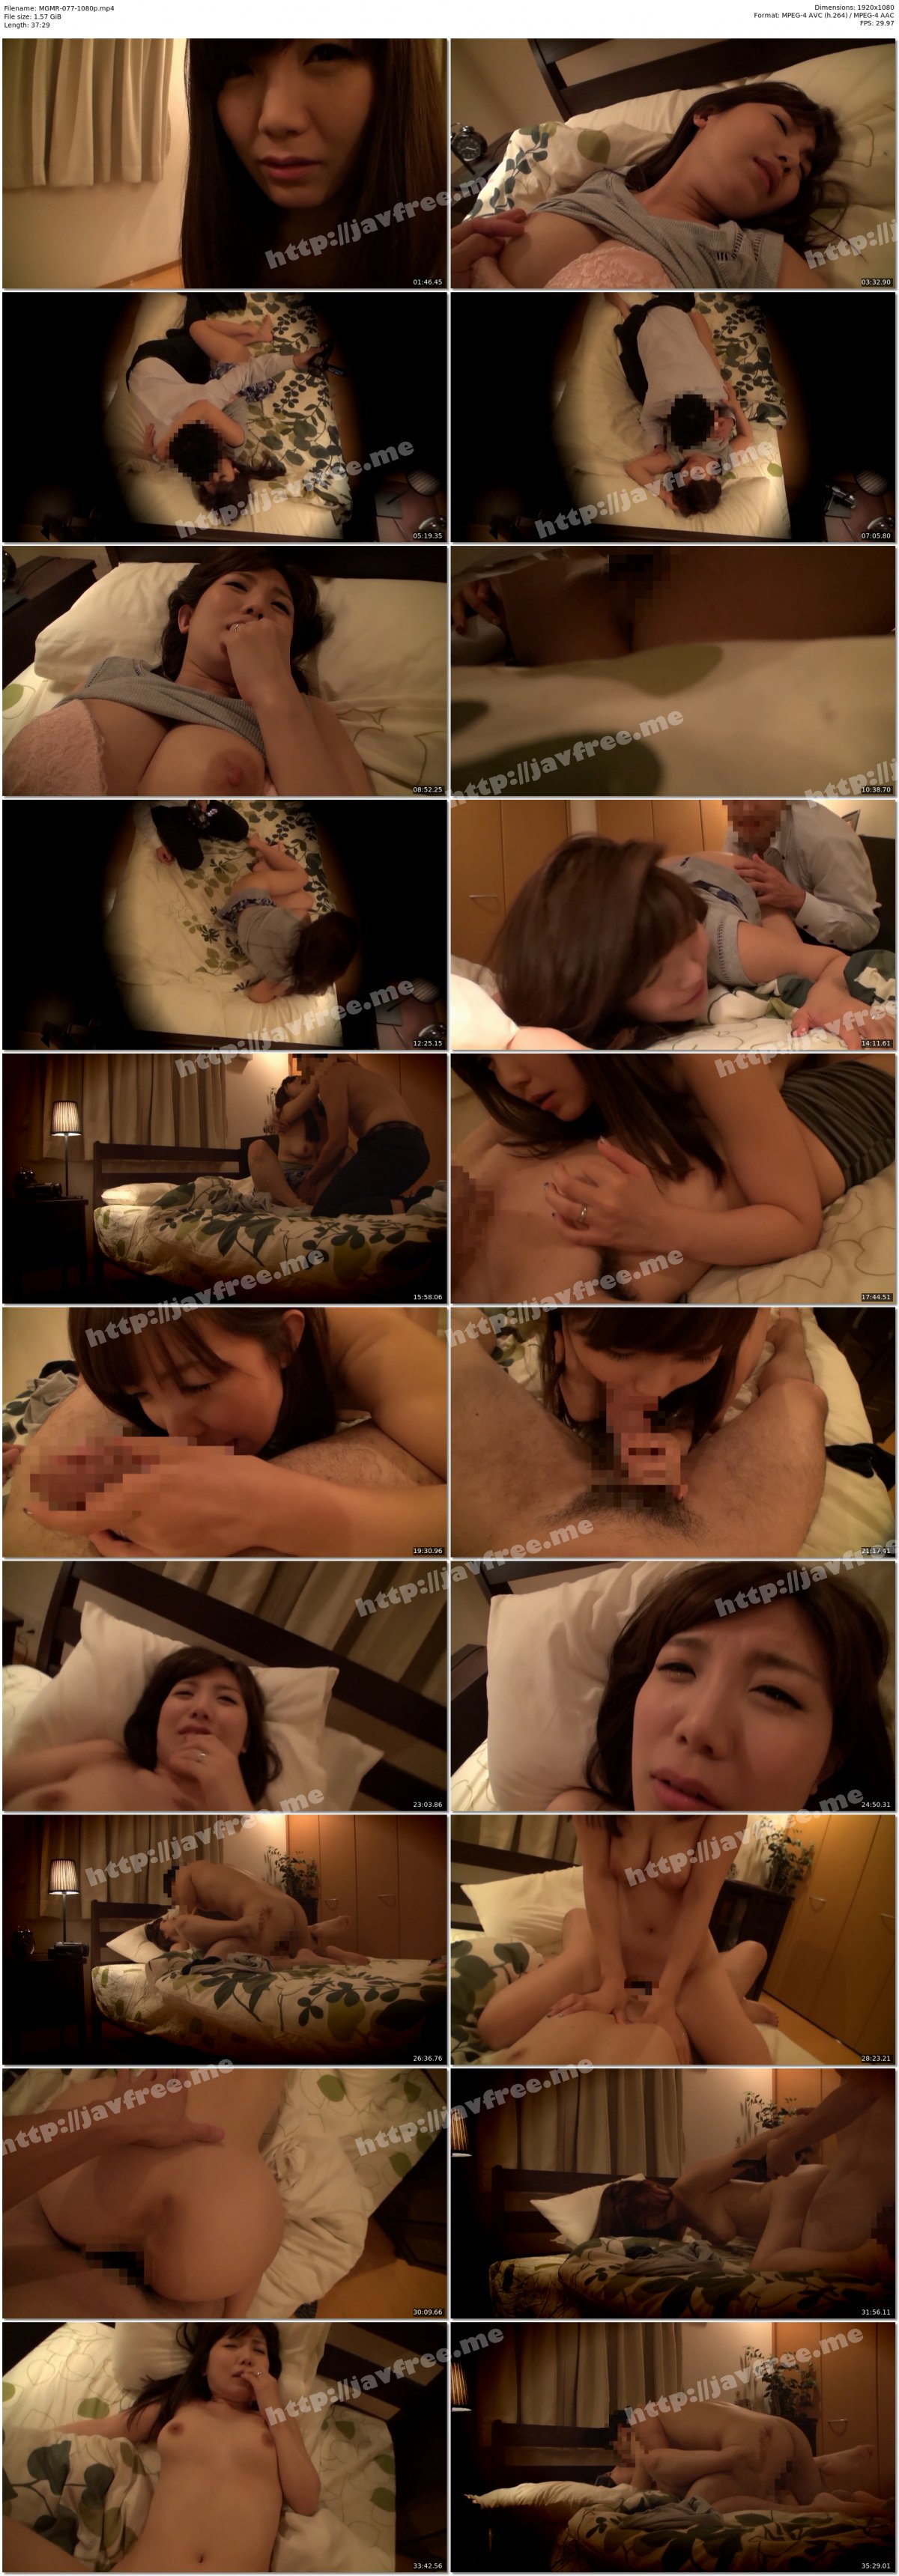 [HD][TYVM-099] ユイ - image MGMR-077-1080p on https://javfree.me